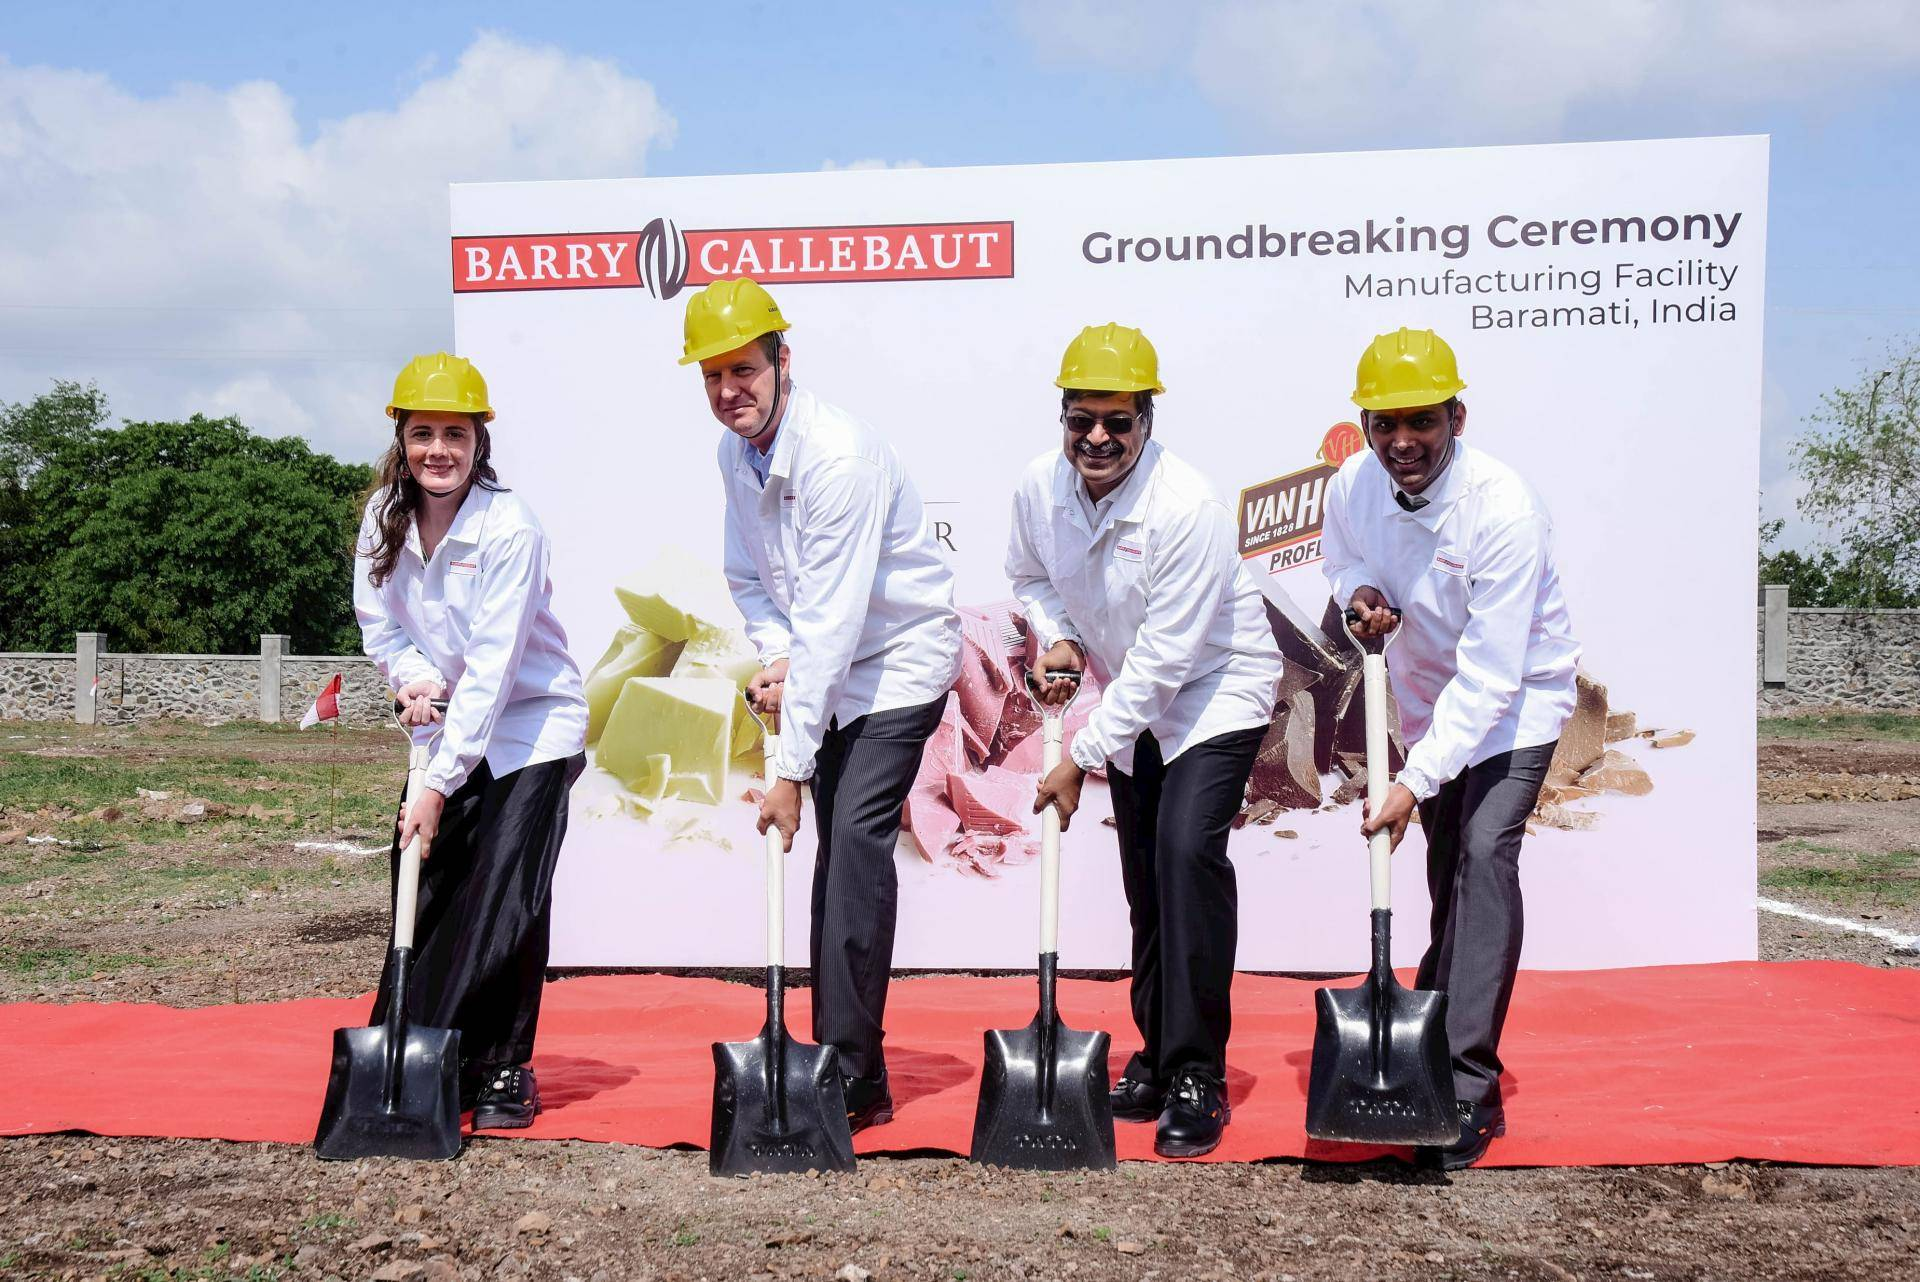 Barry Callebaut announces groundbreaking factory in India